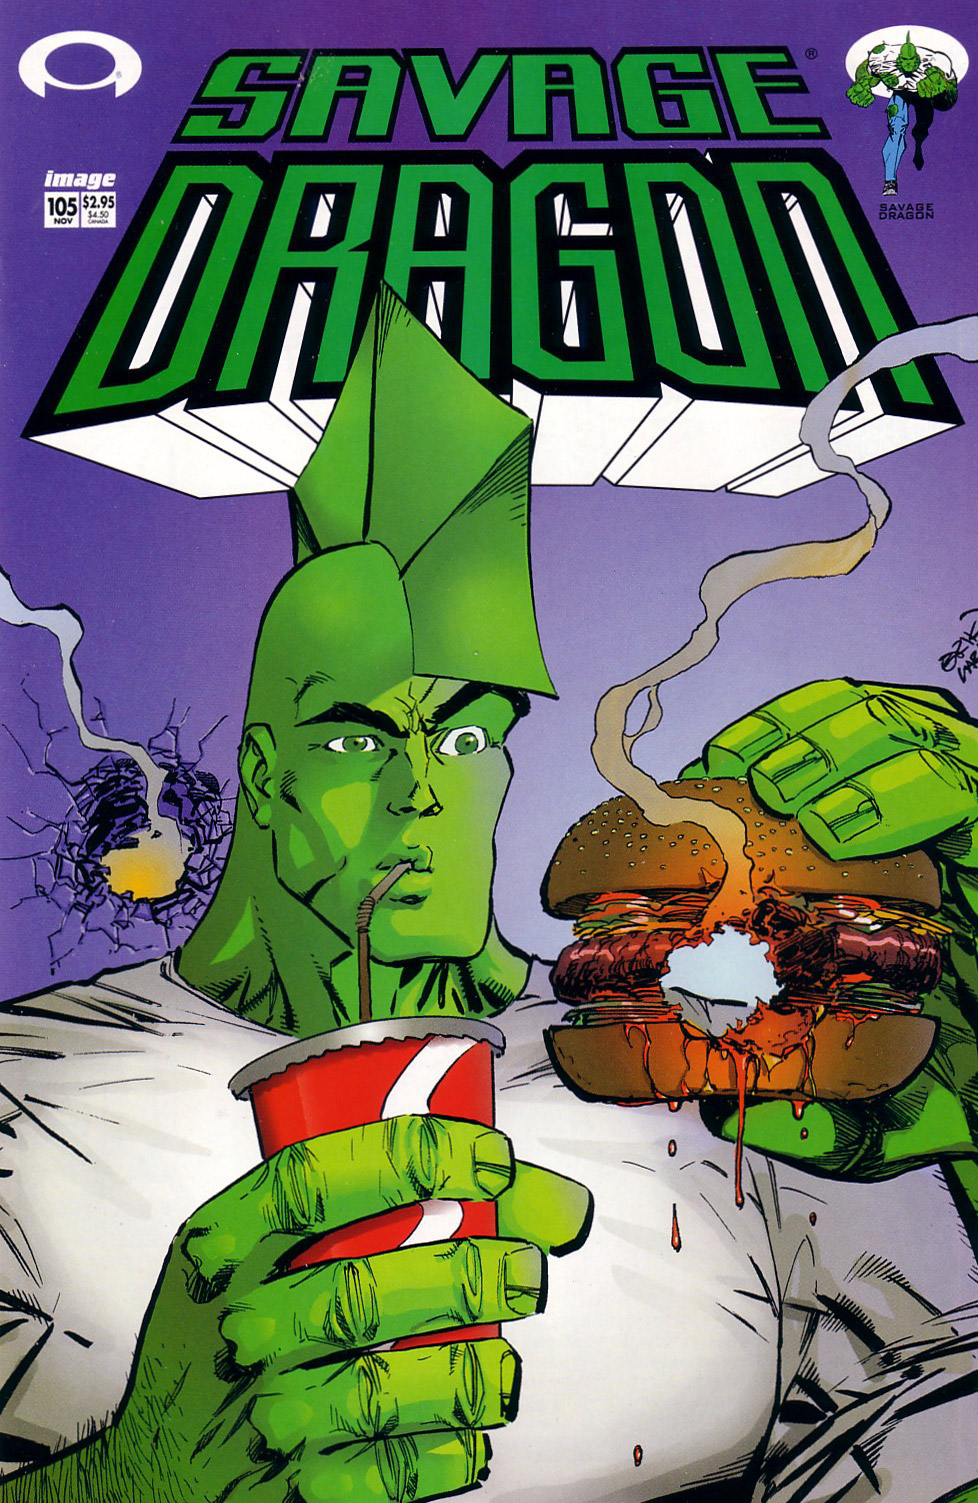 Cover Savage Dragon Vol.2 #105